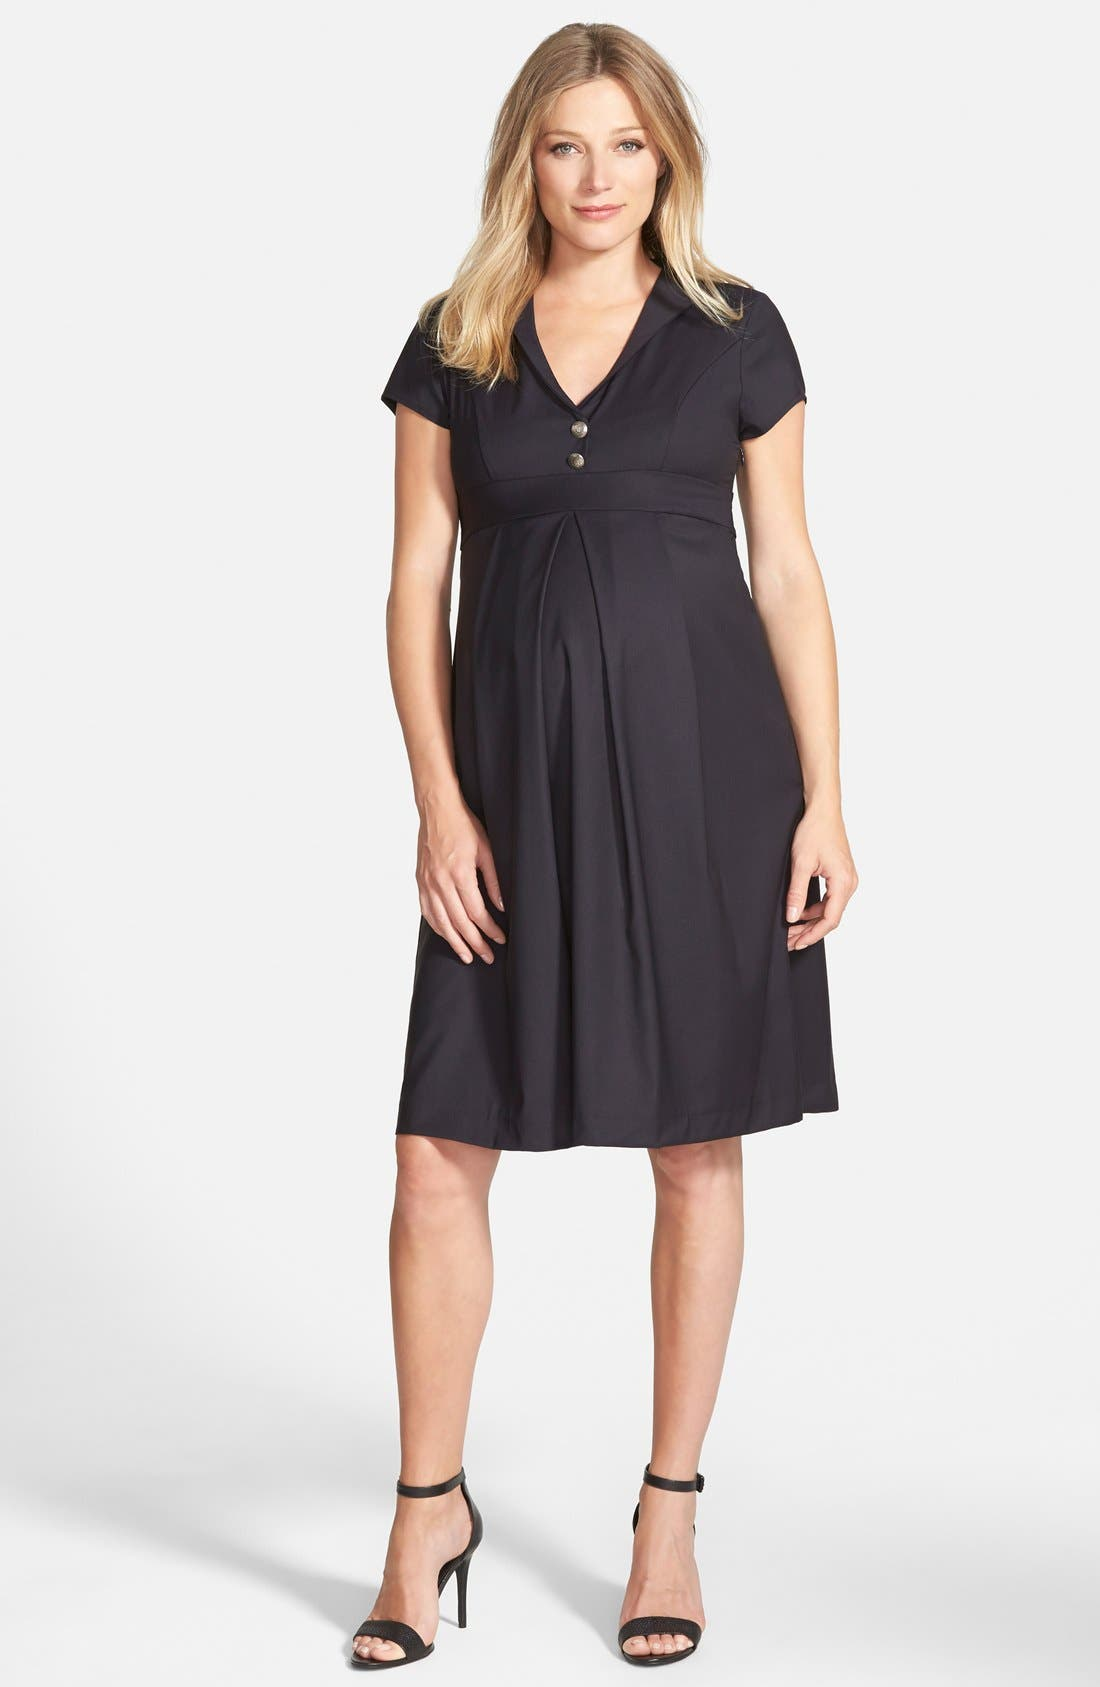 Eva Alexander London 'Audrey' Maternity Dress